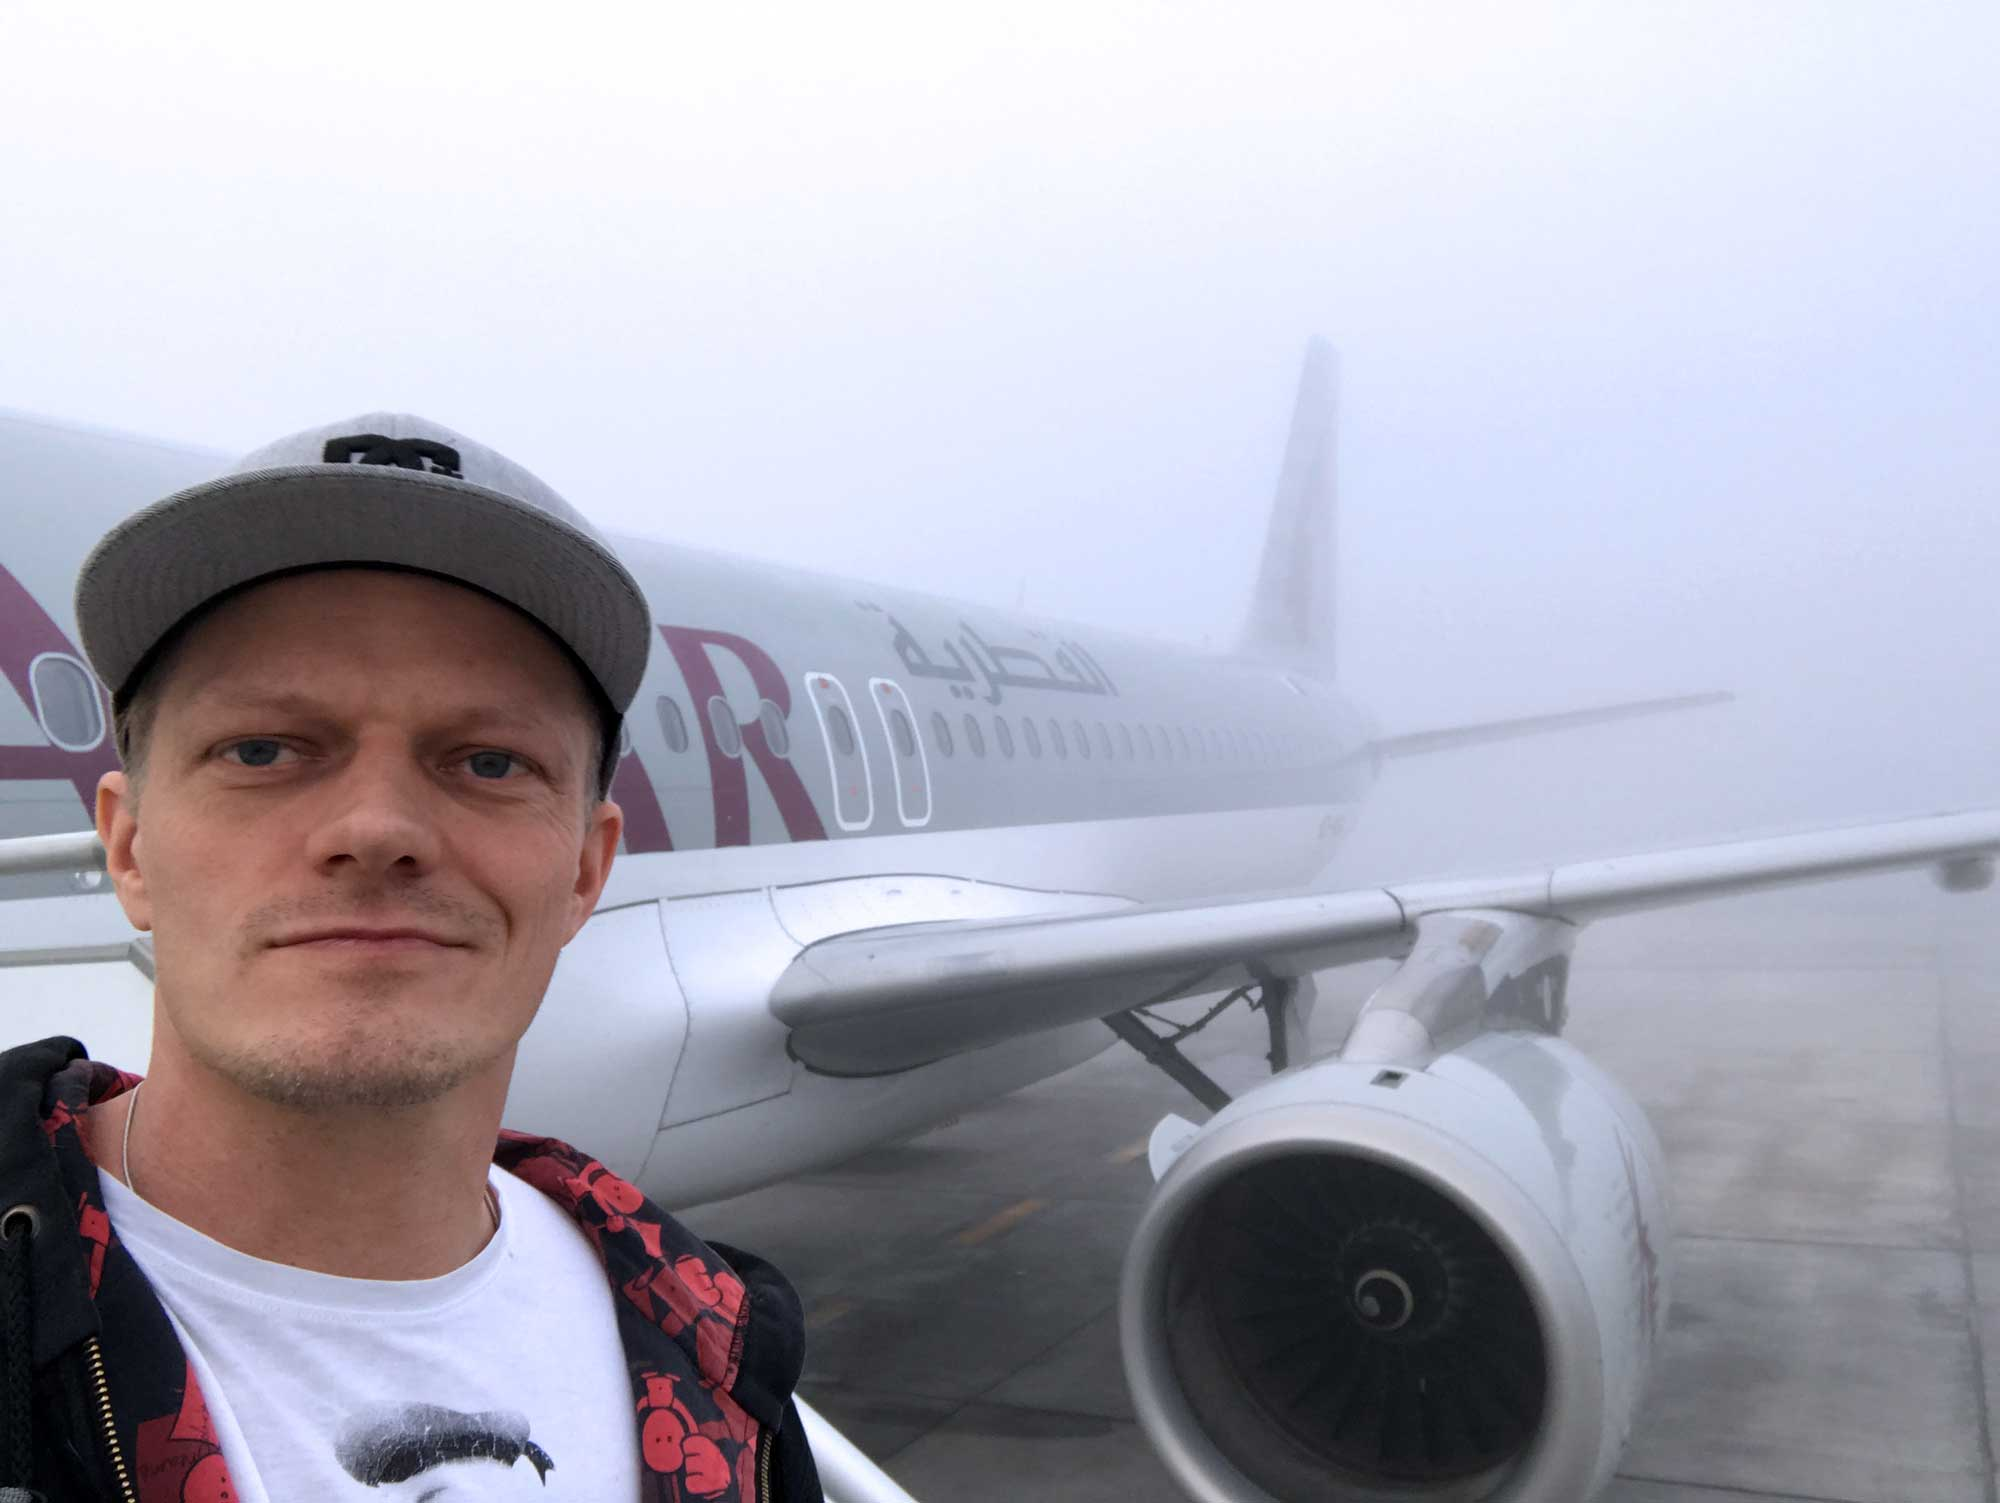 Qatar Airways QR308 Helsinki to Doha - Travel - Blog - Screw Them All